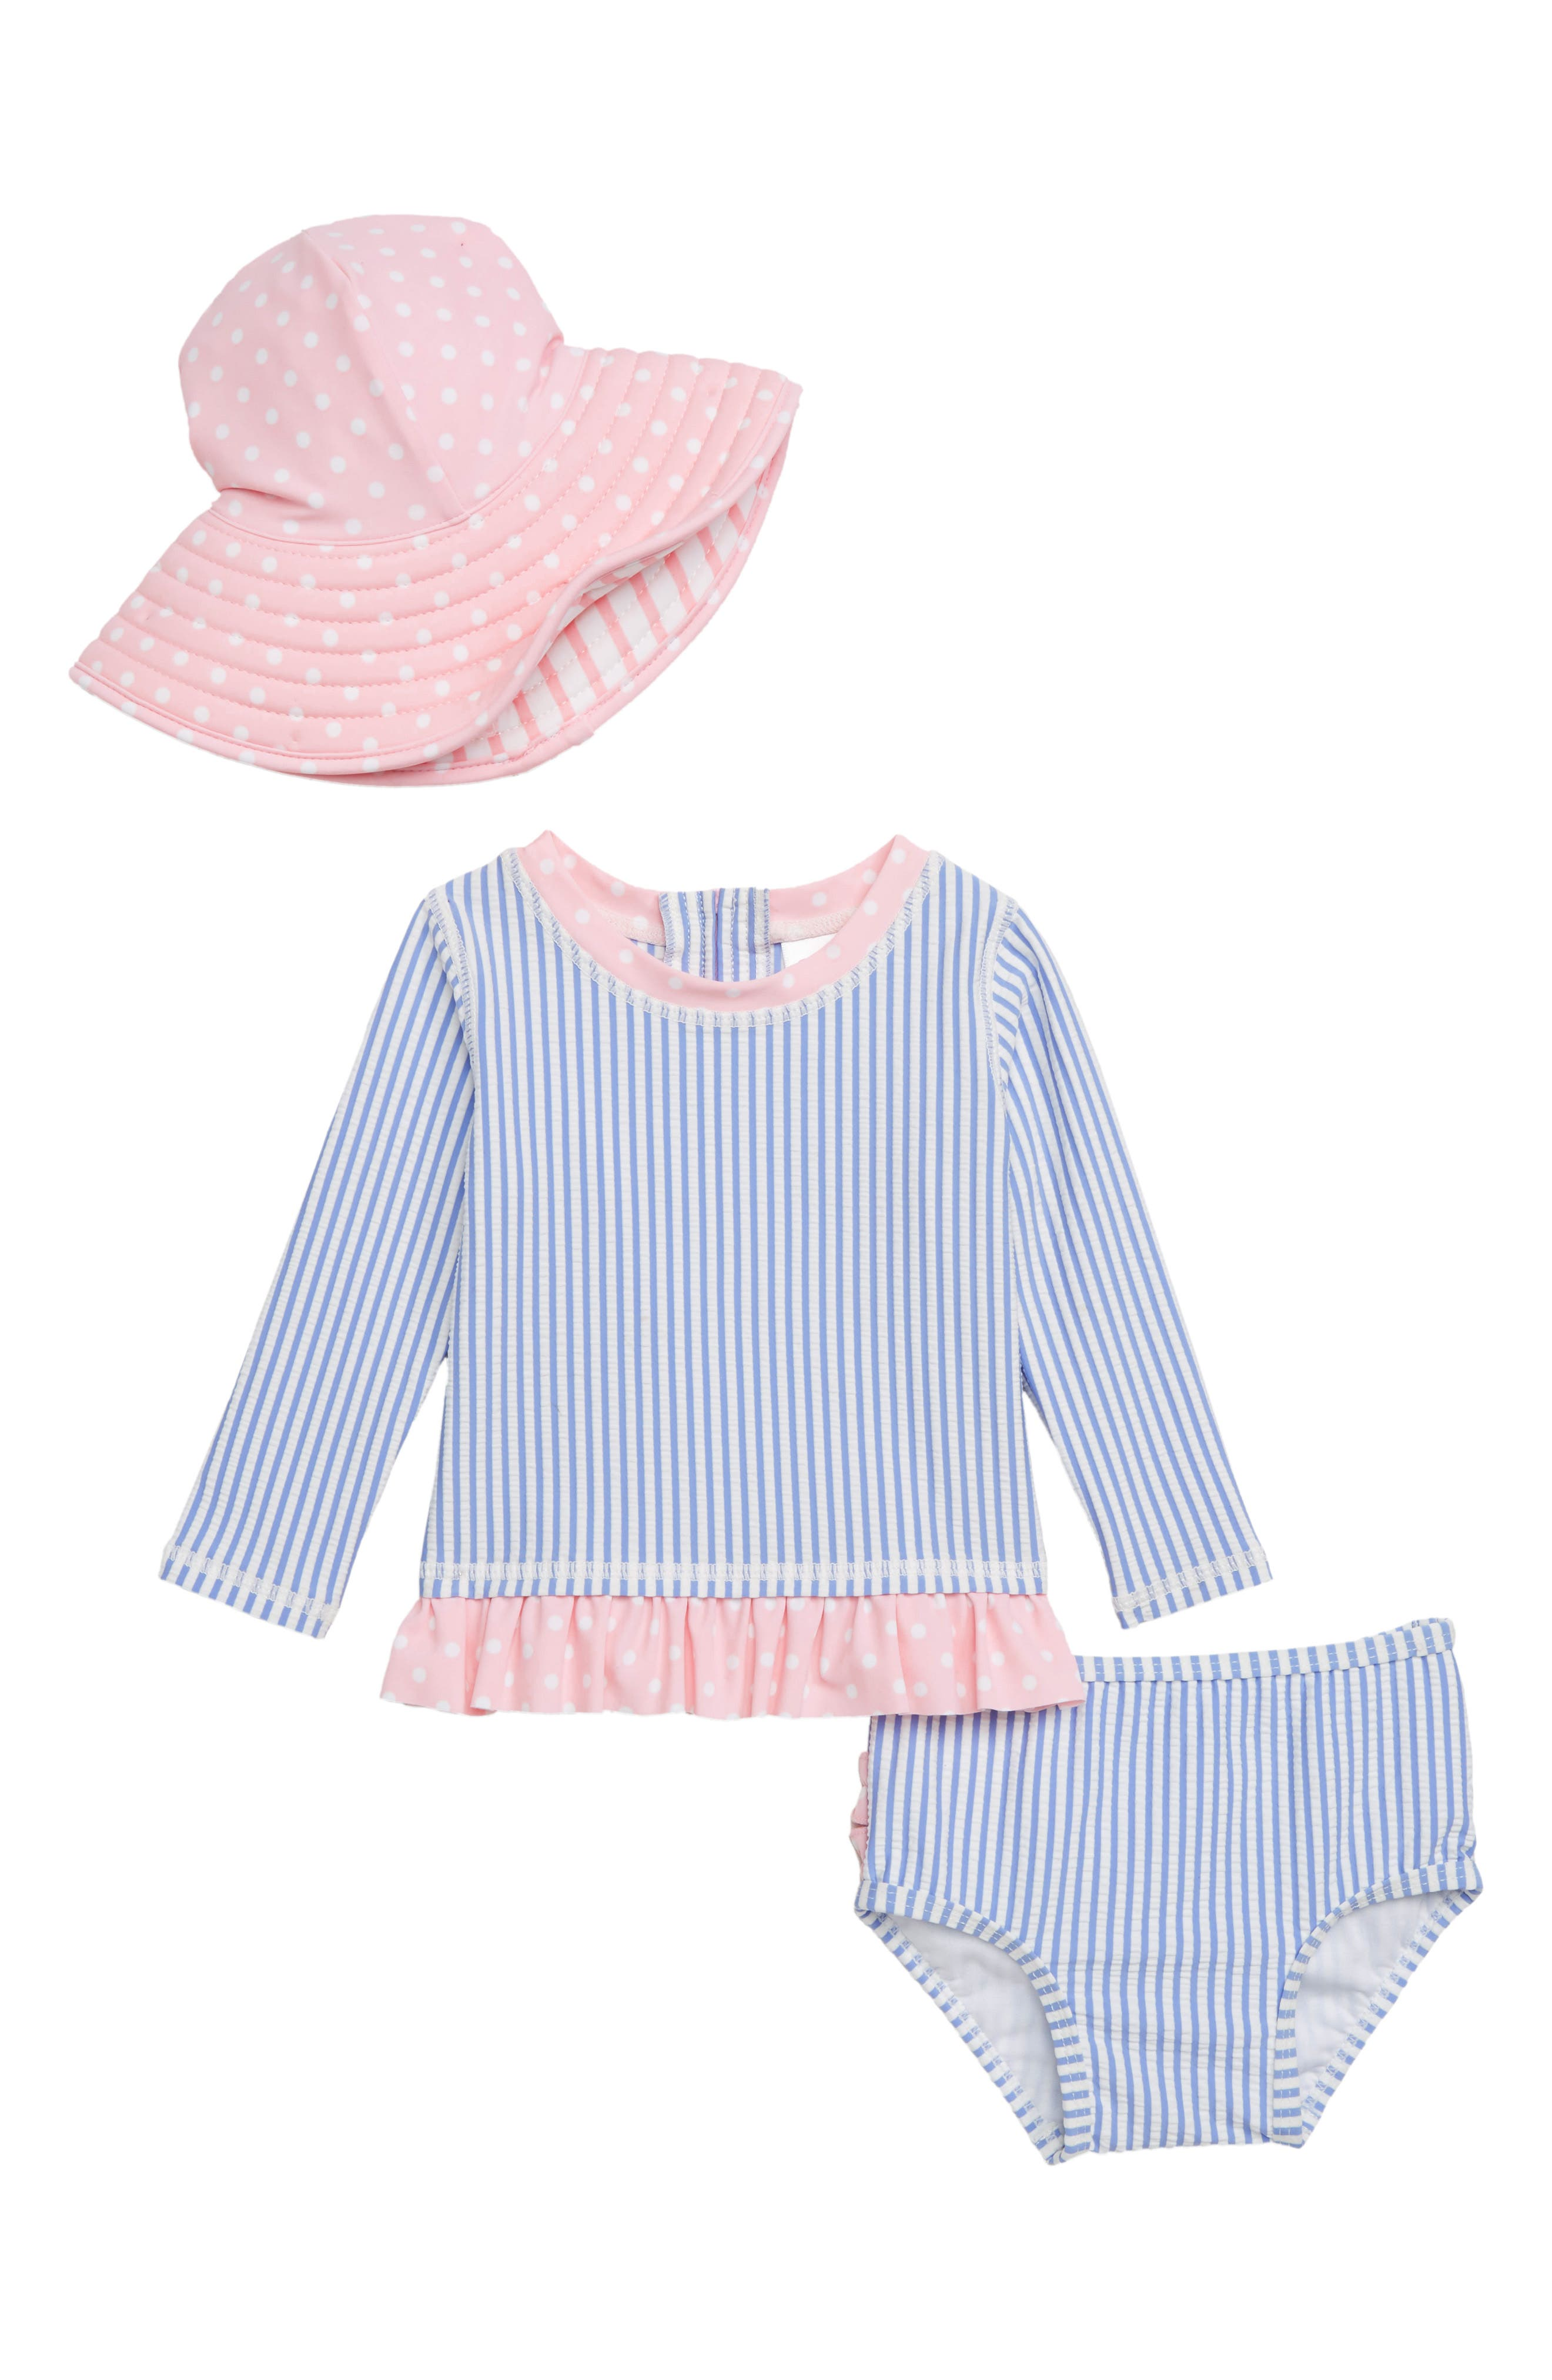 Infant Girls Rufflebutts Seersucker ThreePiece Rashguard Swimsuit With Hat Size 612M  Blue